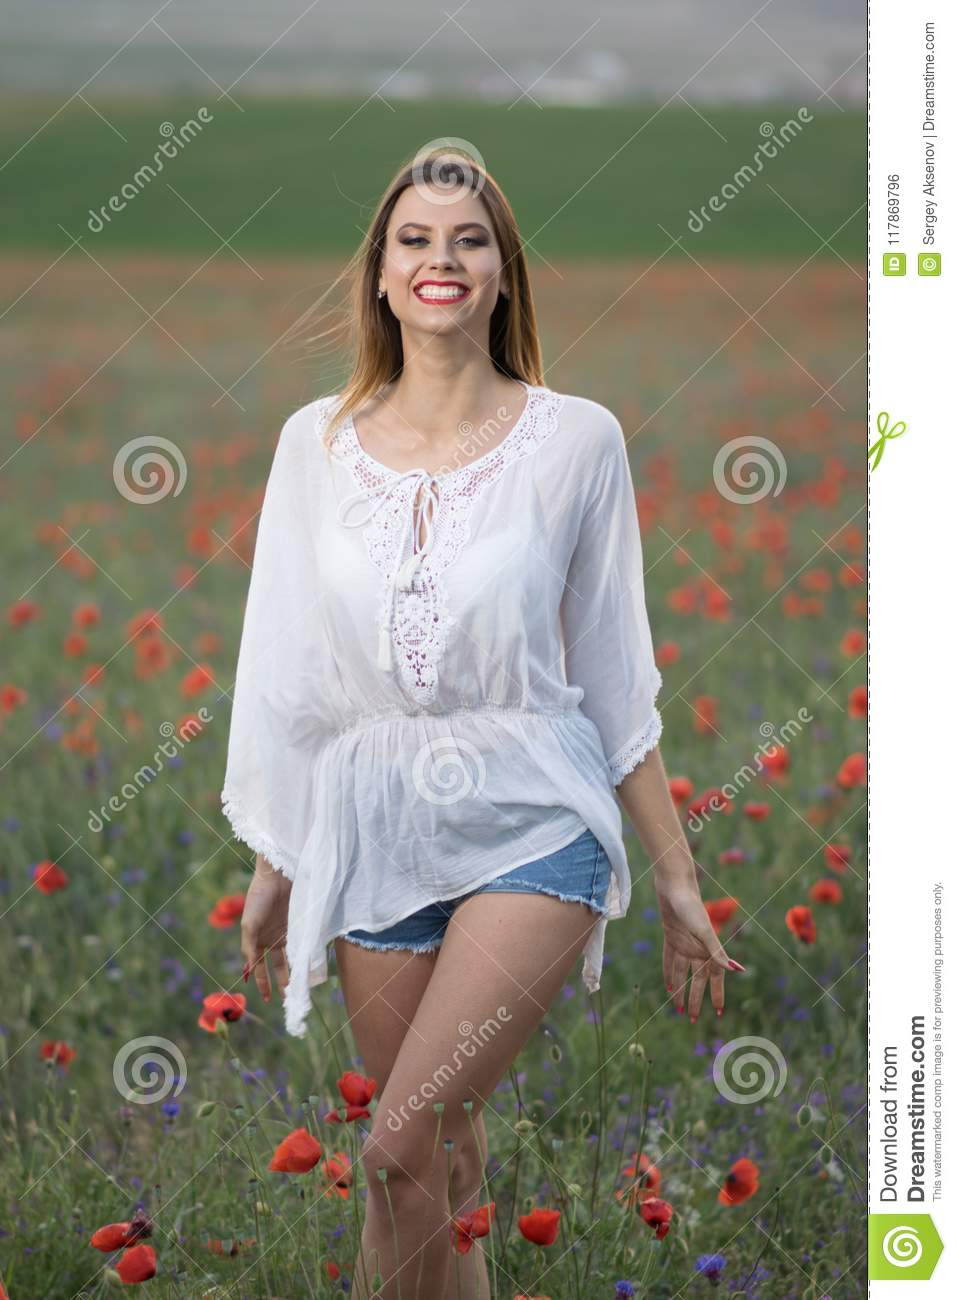 Hot young woman walking among the poppies in a hat